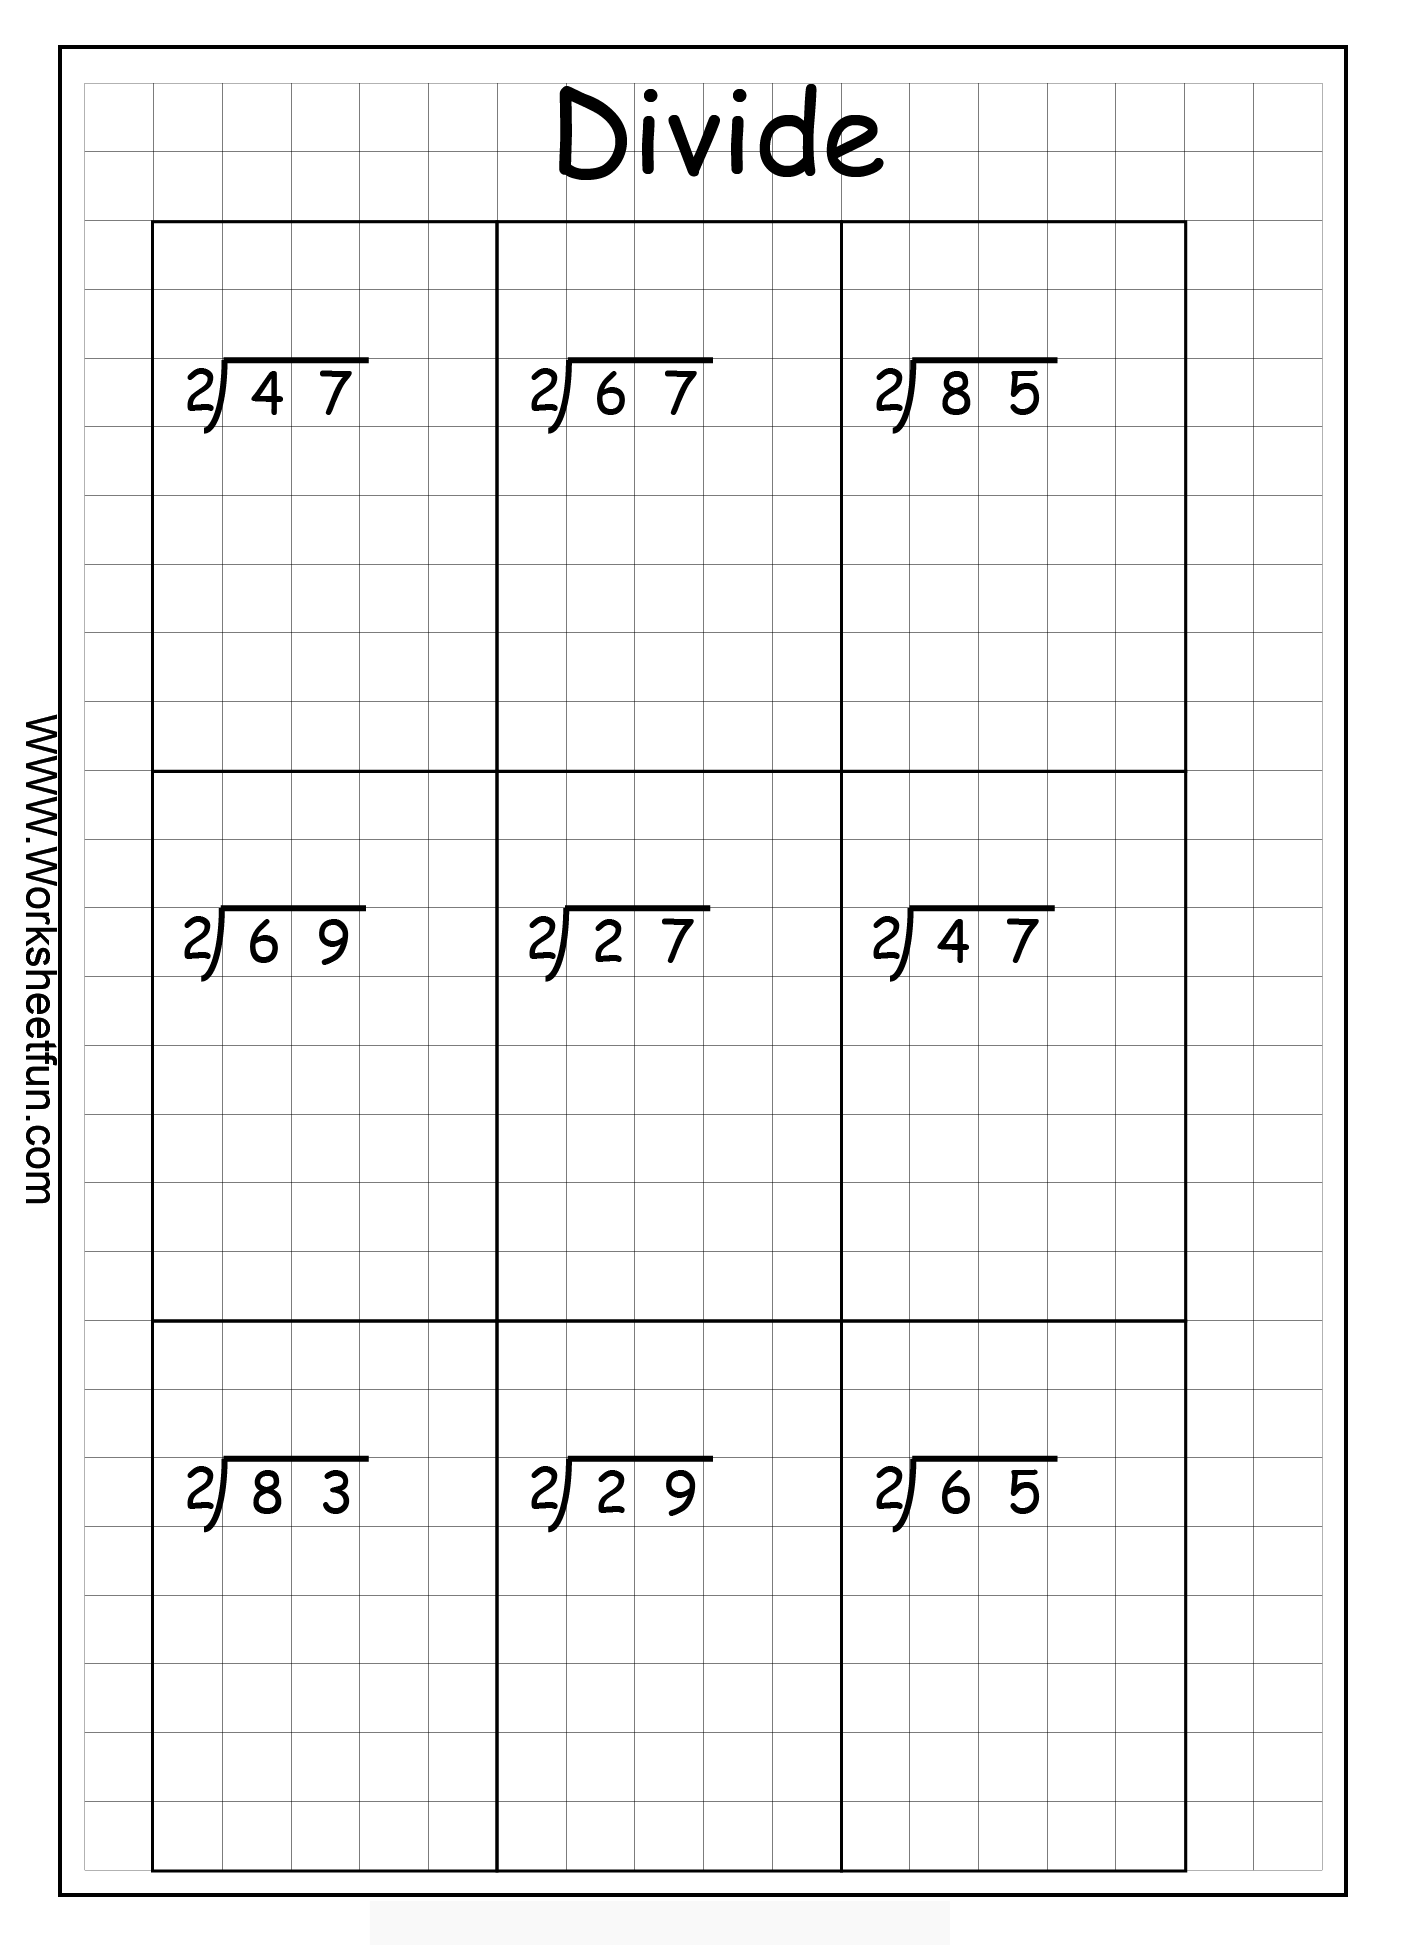 Pin by www.worksheetfun .com on Printable Worksheets   Division worksheets [ 1950 x 1406 Pixel ]